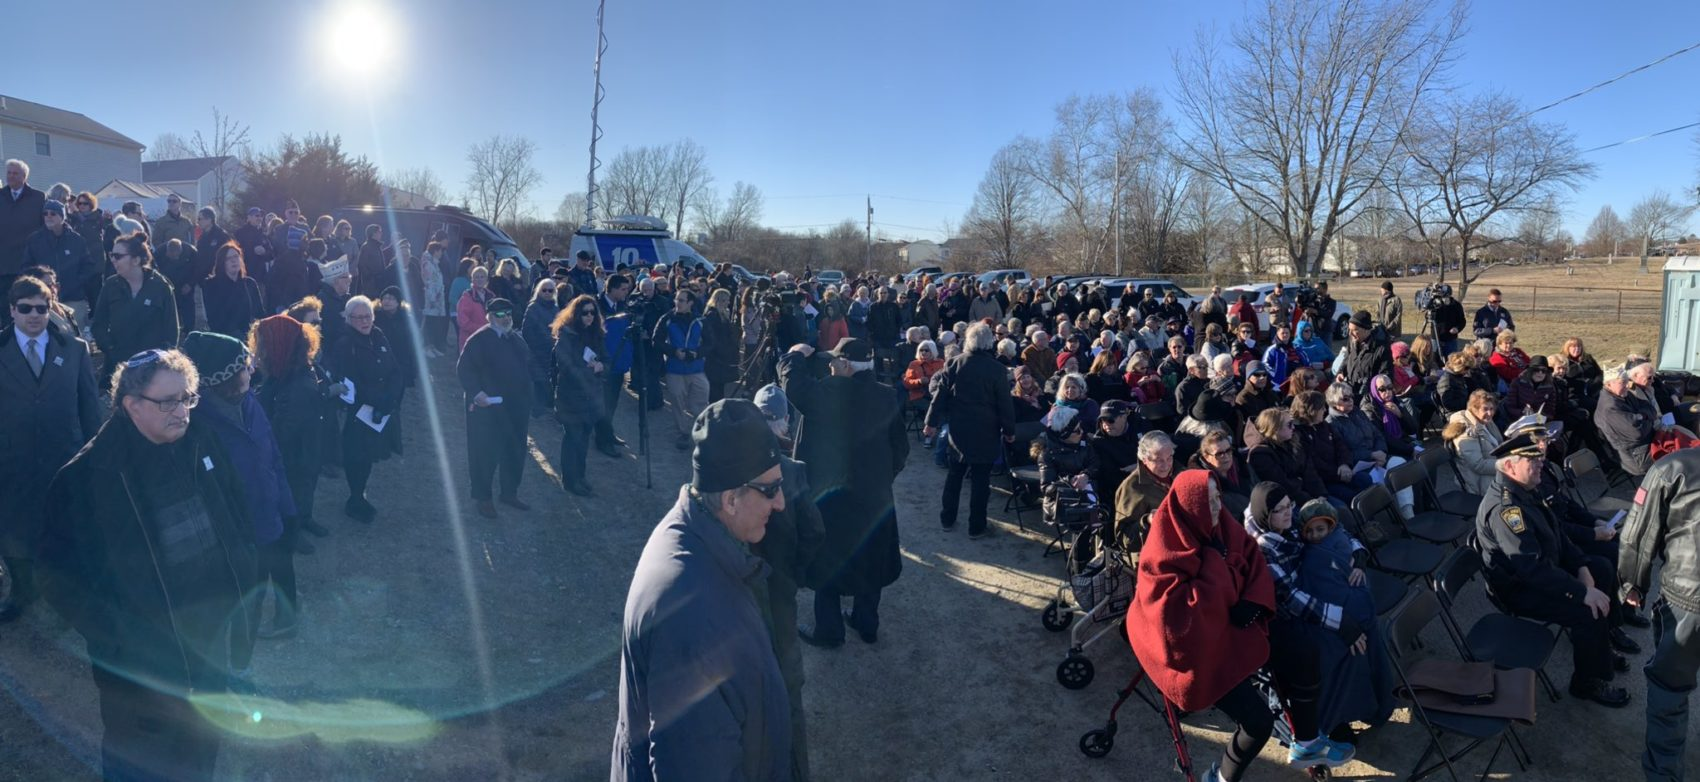 Hundreds gather at a Fall River Jewish cemetery for an antisemitism vigil after dozens of gravestones were vandalized. (Simón Rios/WBUR)